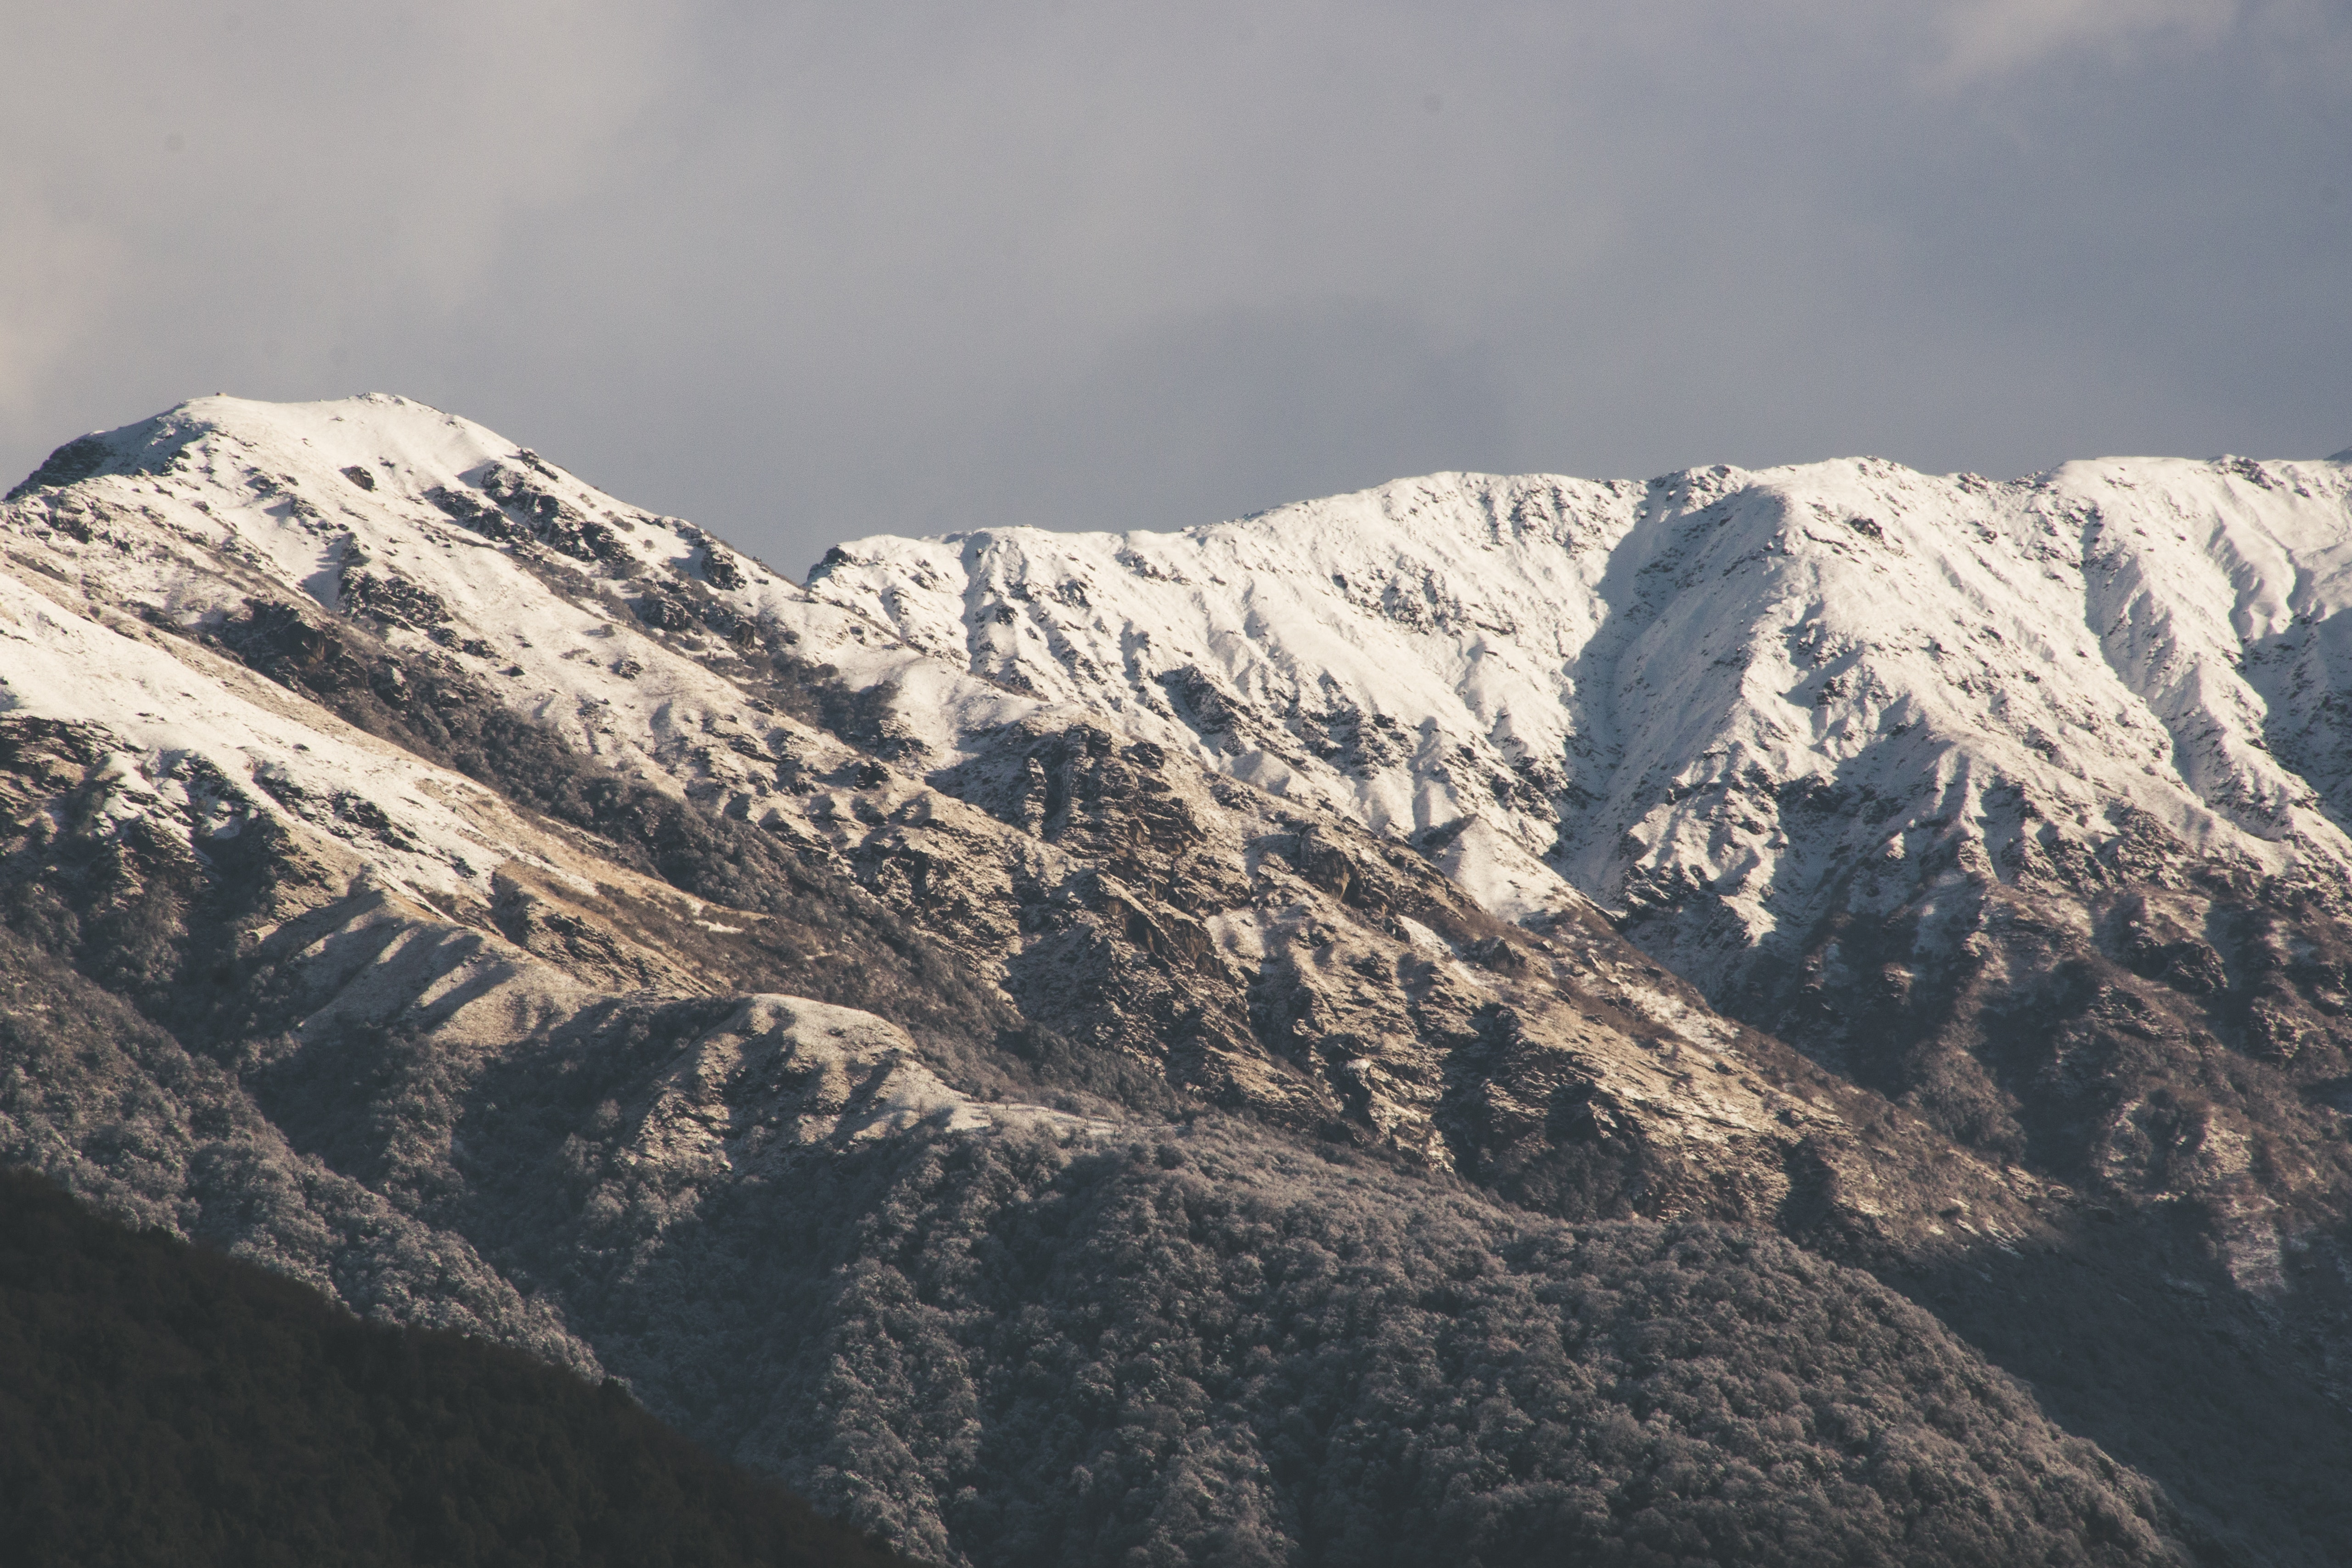 Landscape photograph of snow-capped mountains